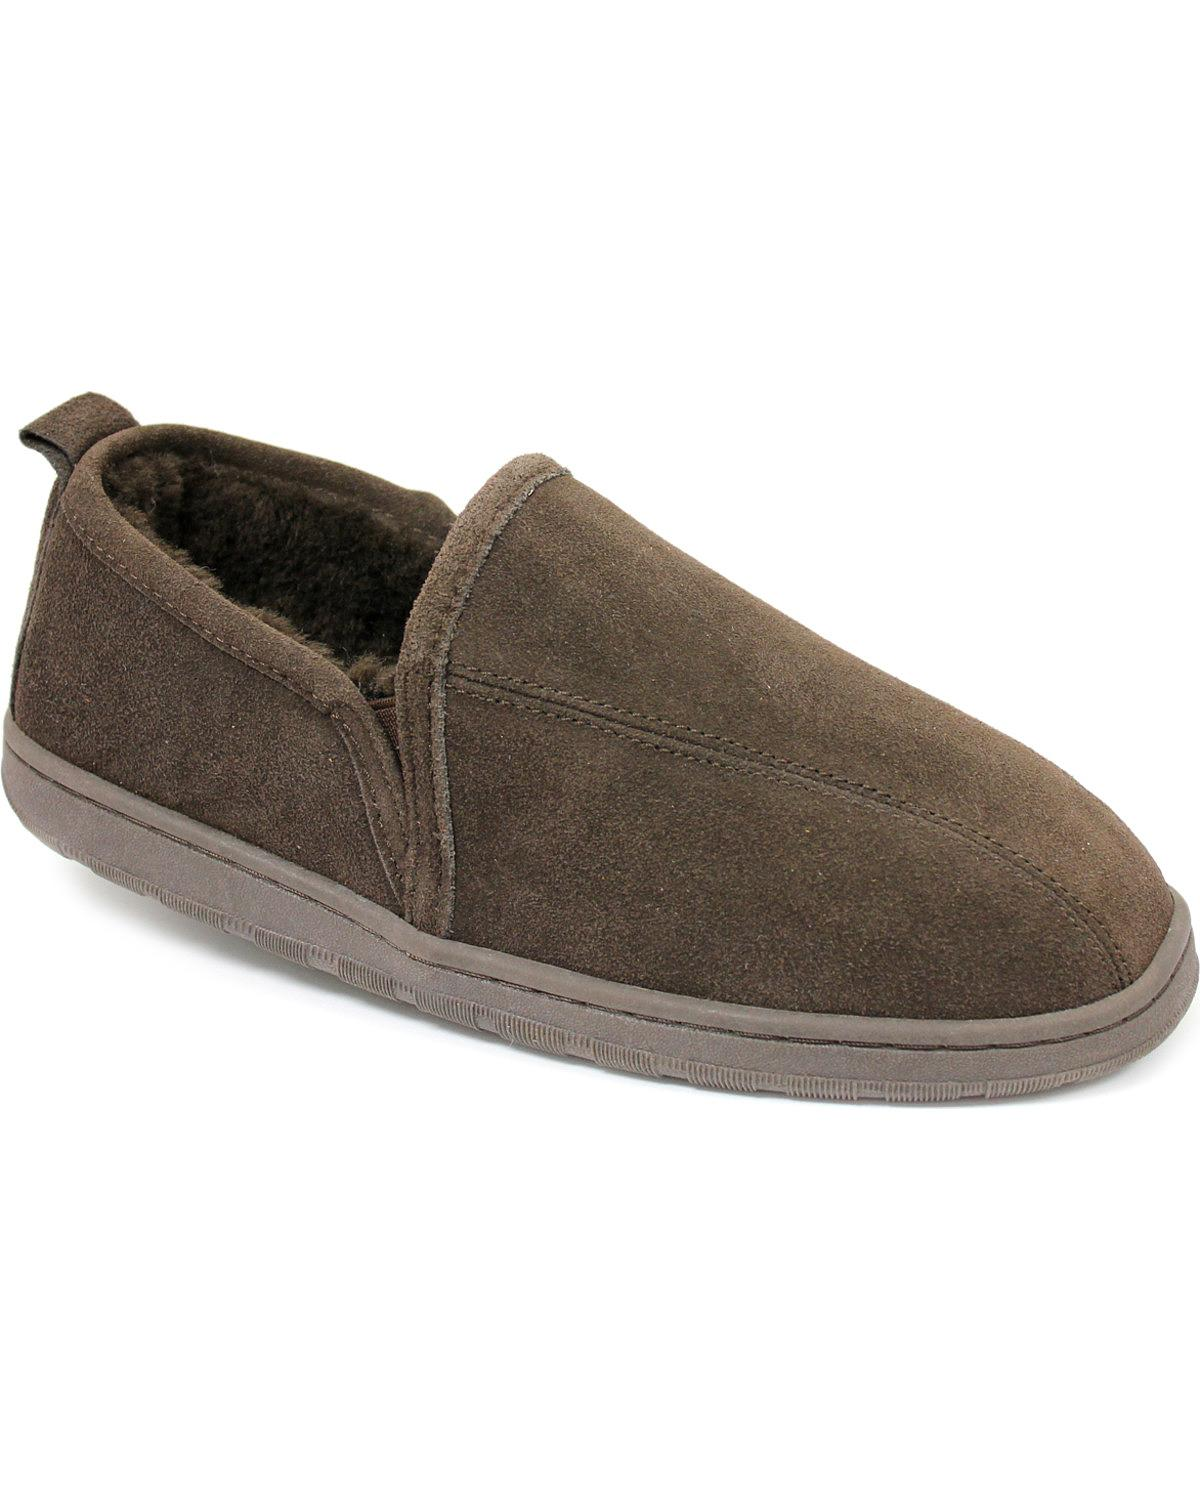 Click here to buy Lamo Footwear Men